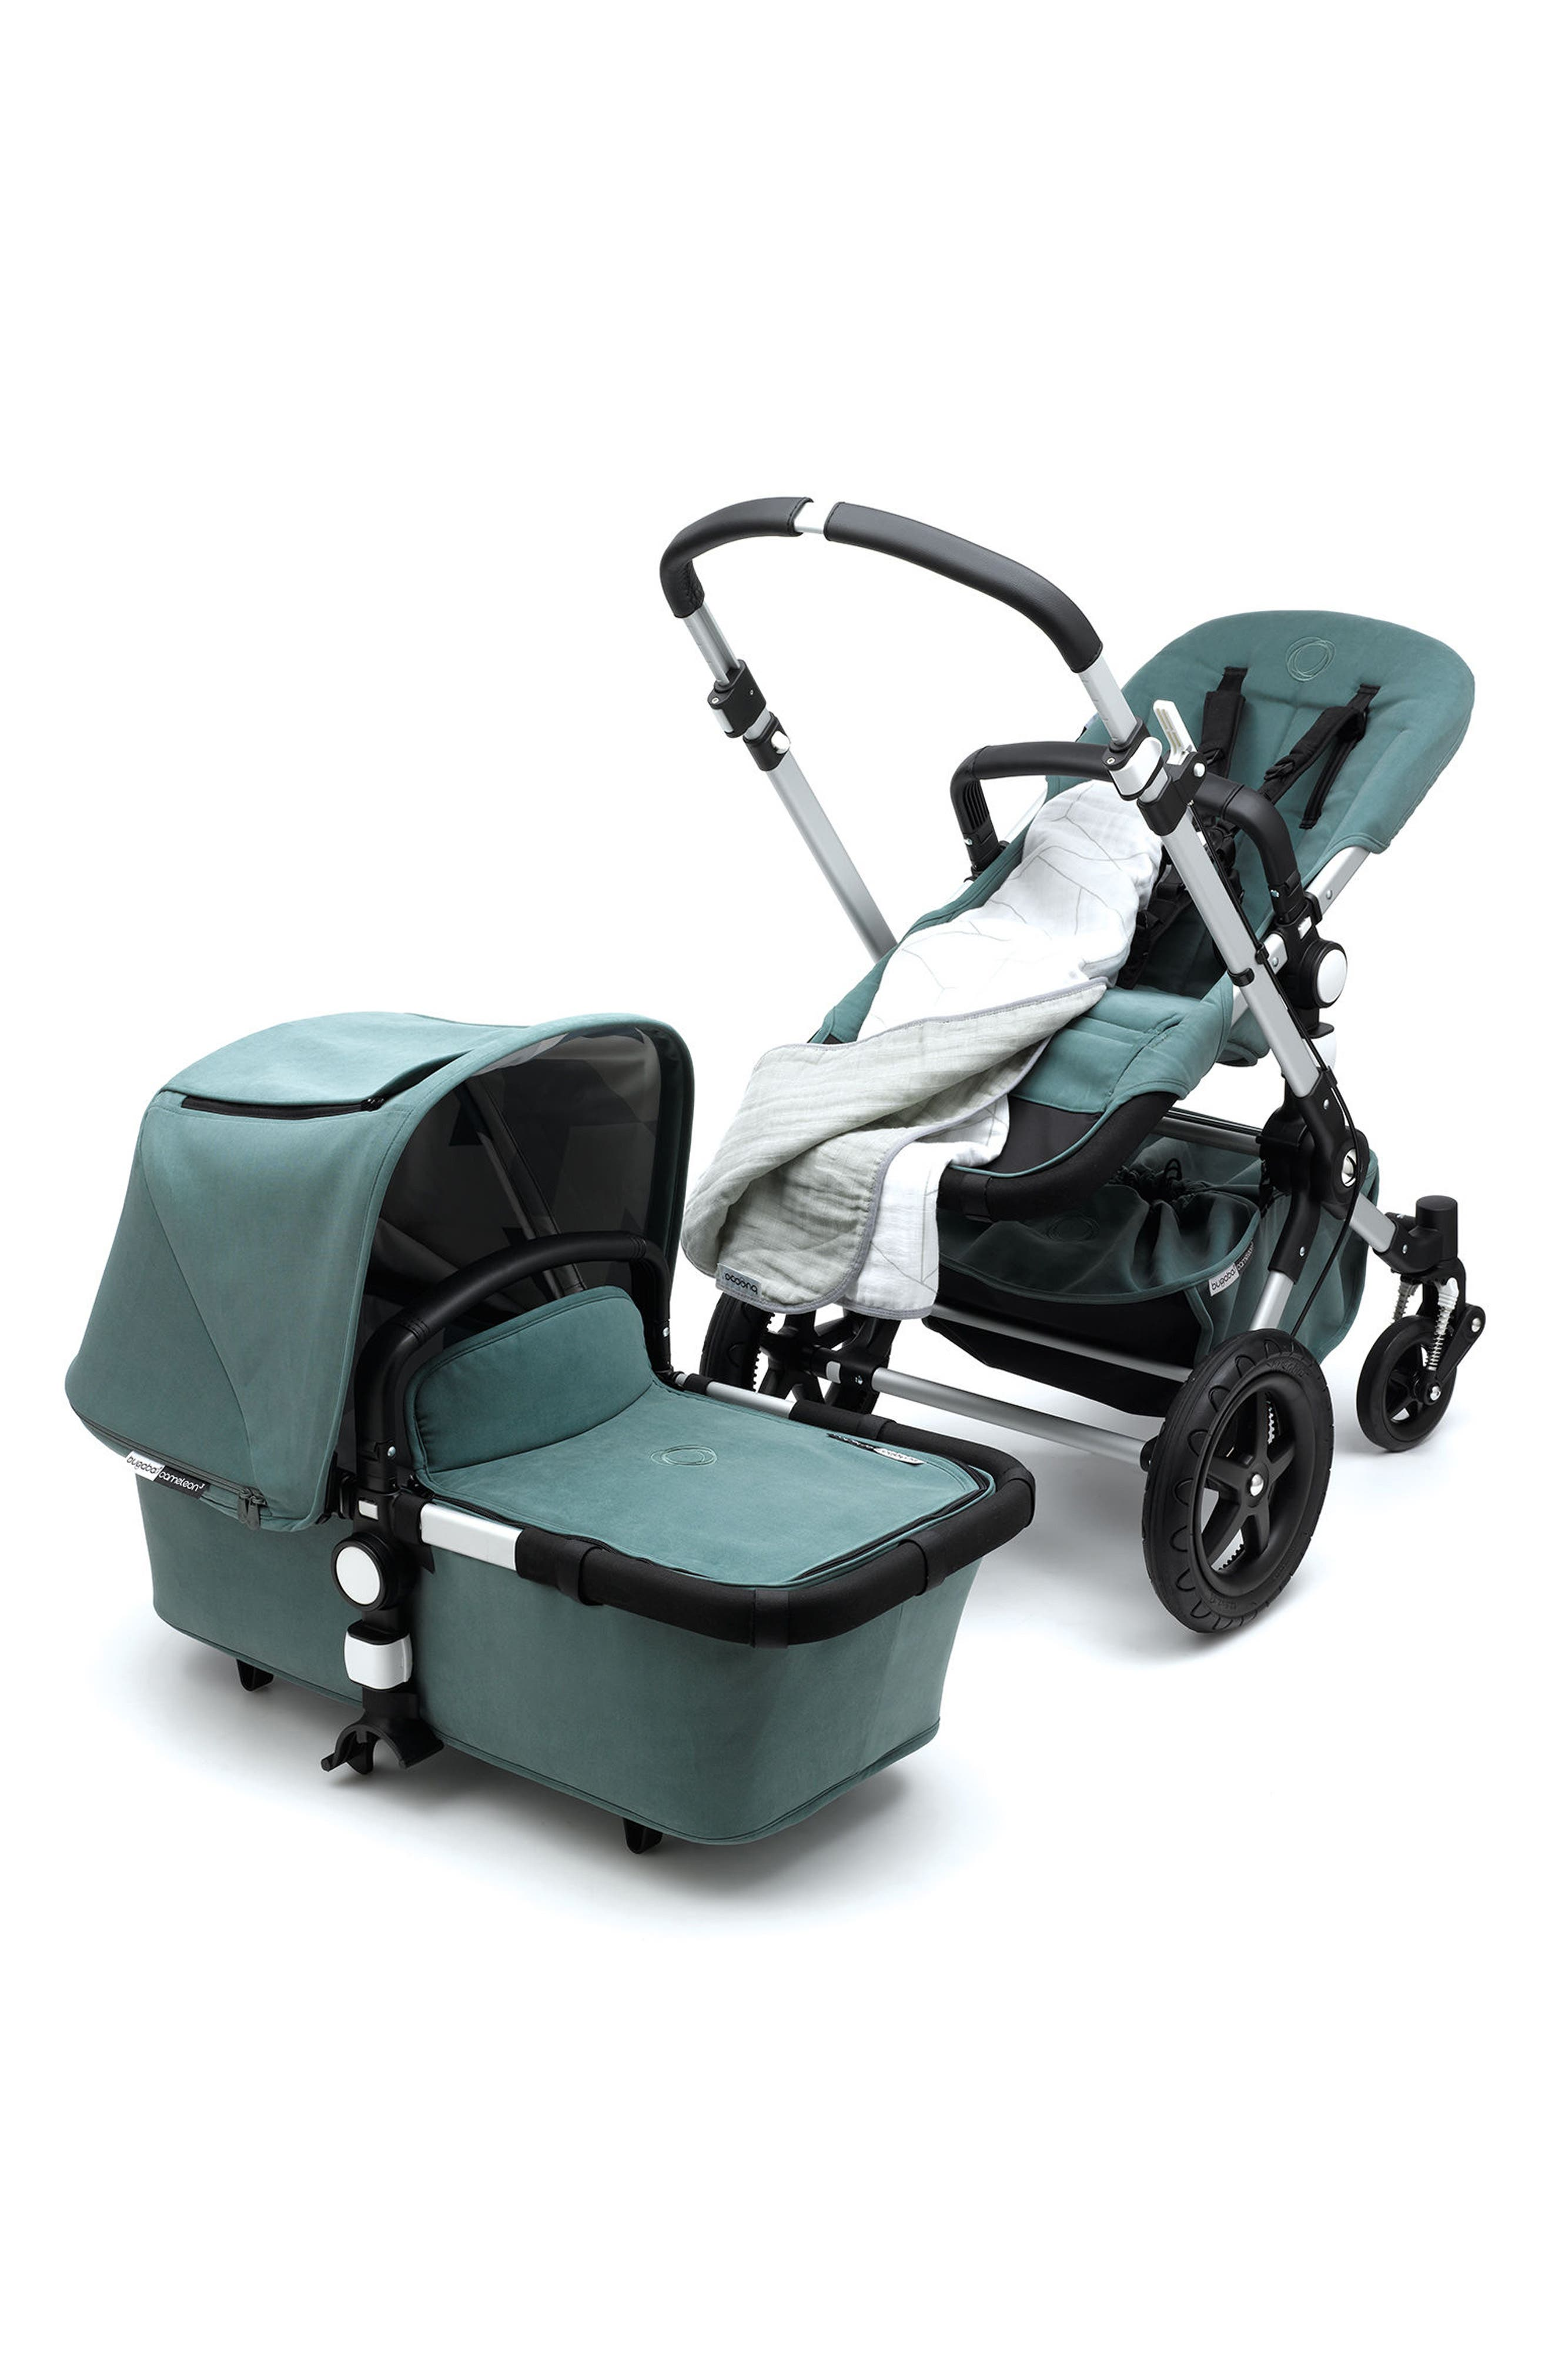 Alternate Image 1 Selected - Bugaboo Cameleon³ - Limited Edition Kite Stroller